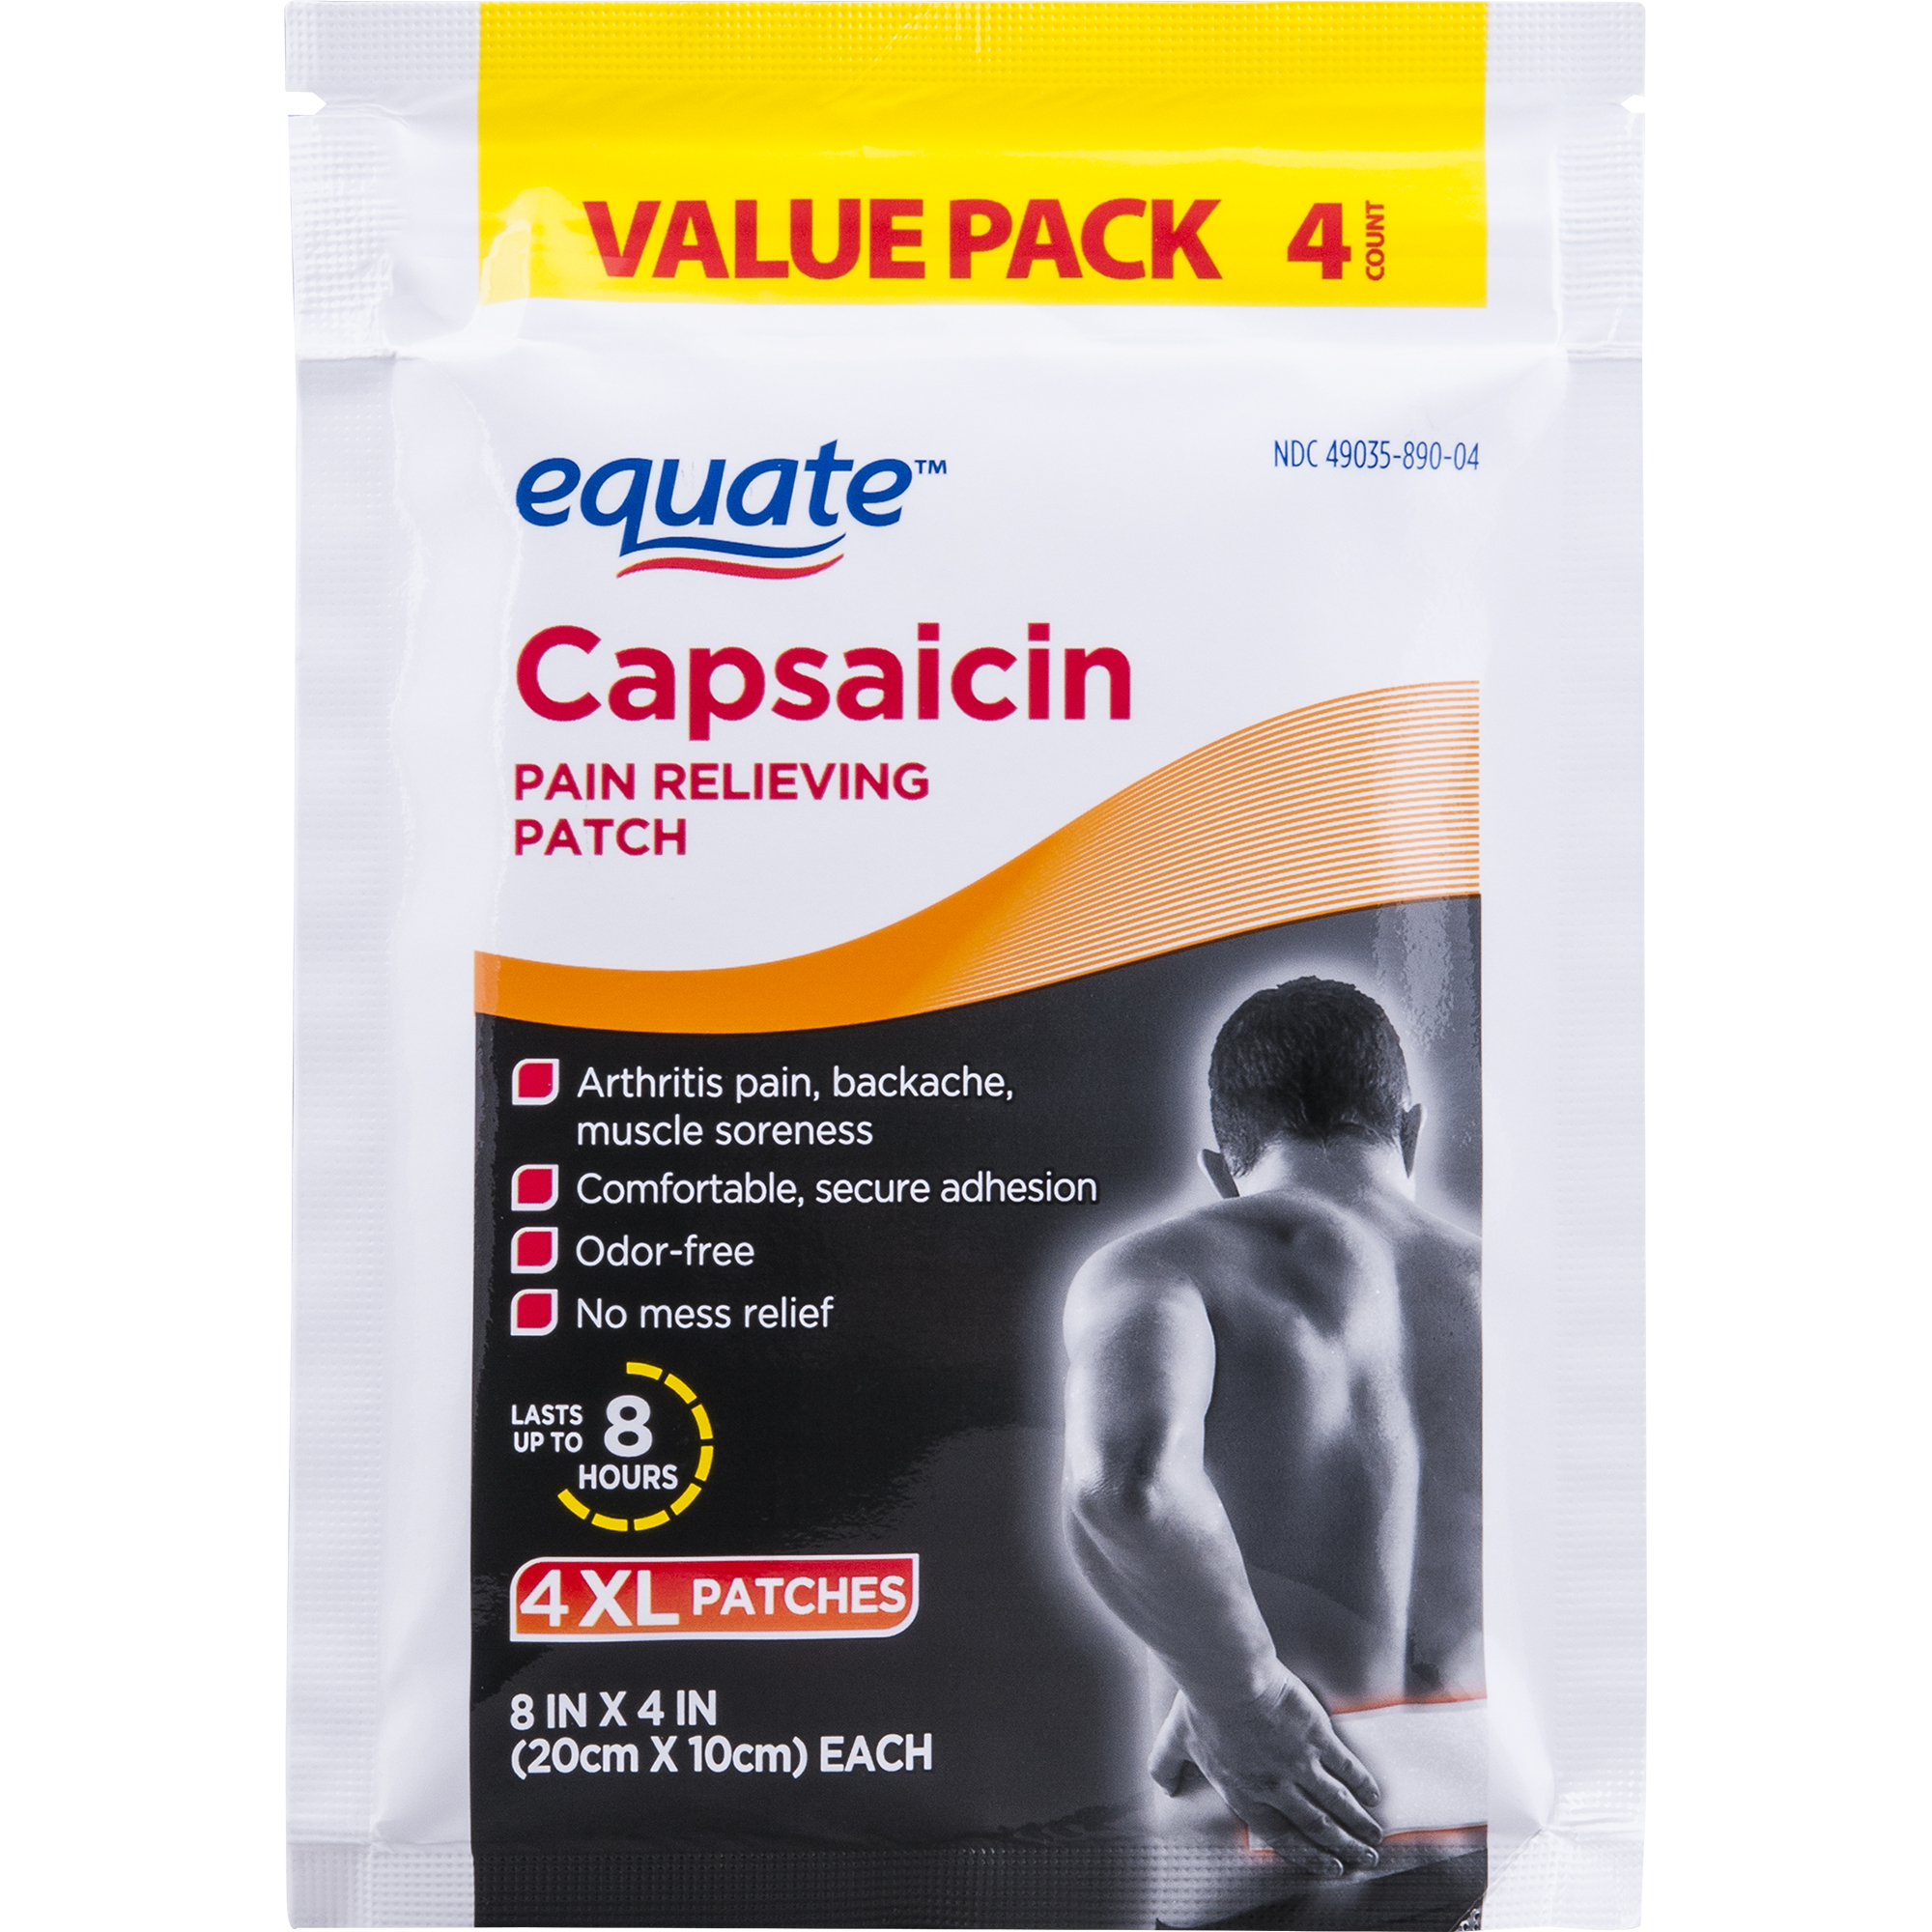 Equate Capsaicin Pain Relieving Patch Value Pack XL 4 ...